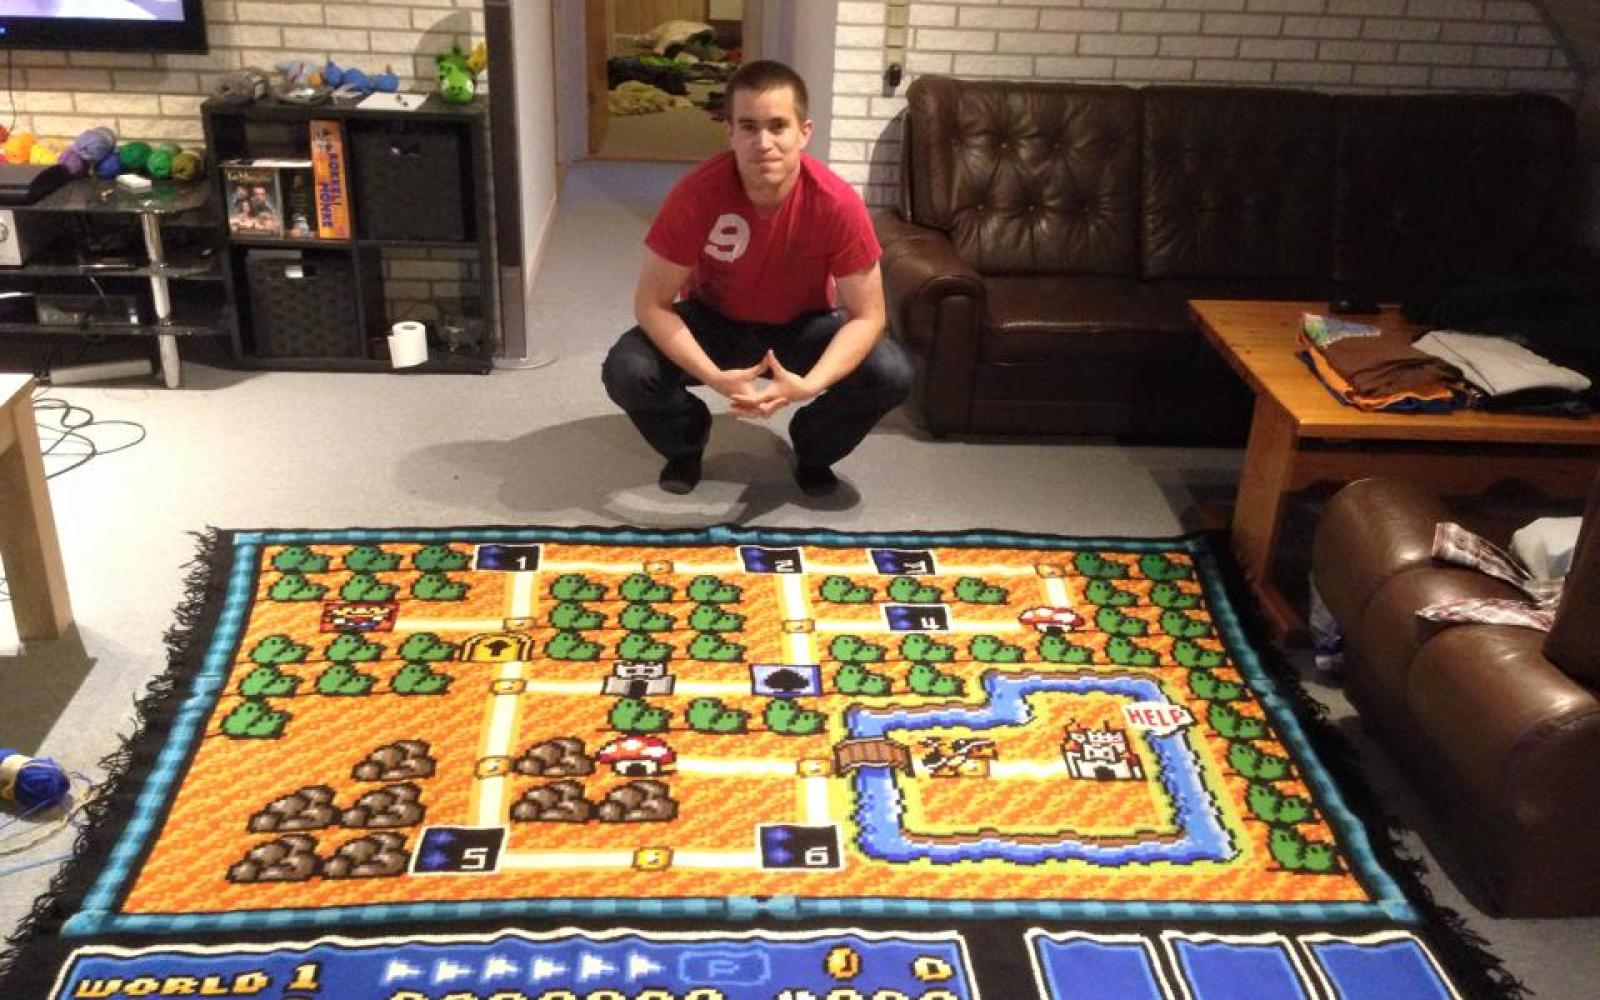 It took more than half-a-decade to knit this highly detailed replica Super Mario Bros. map